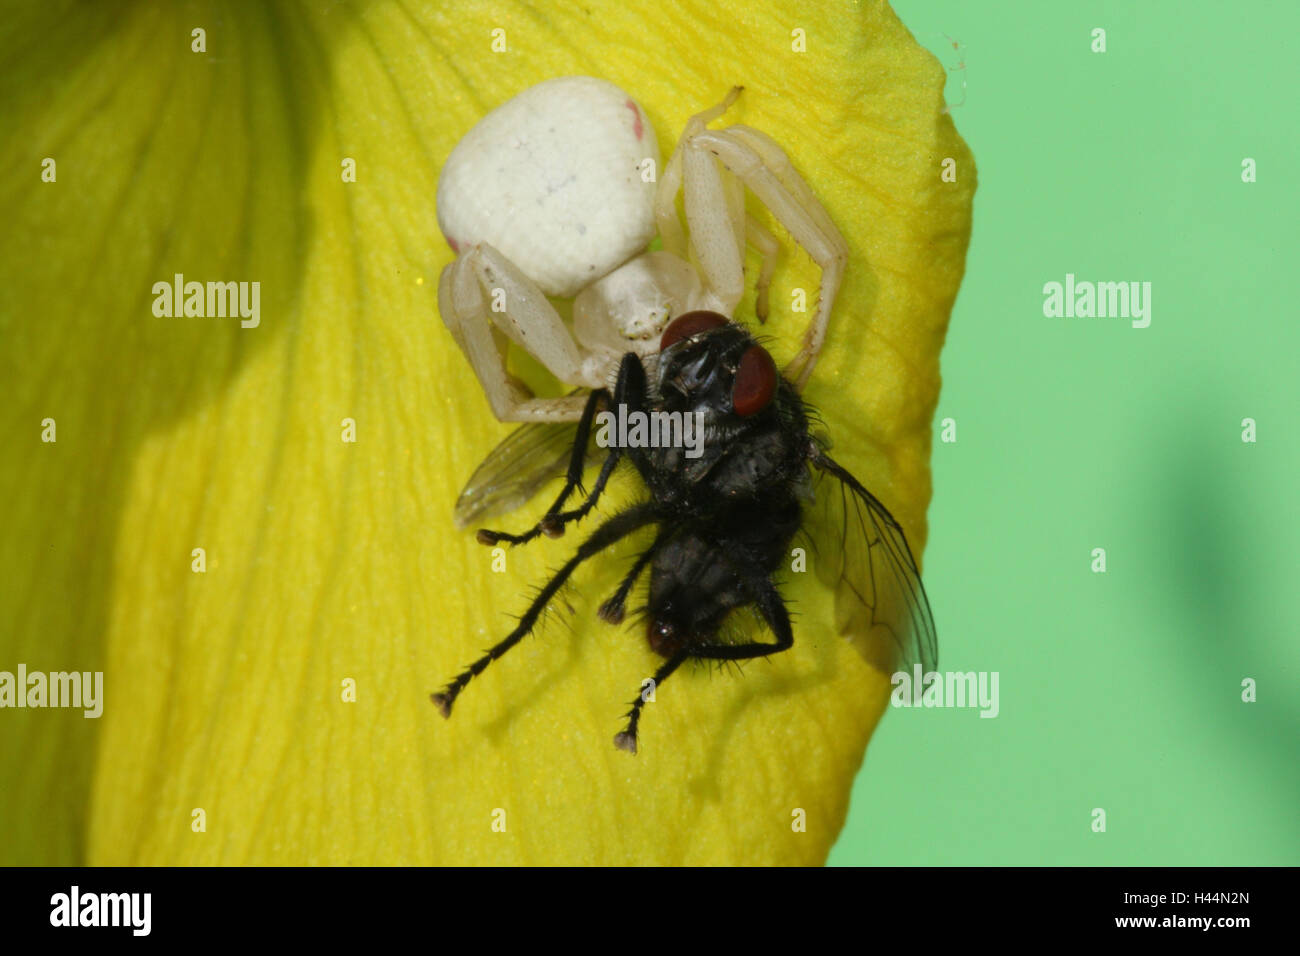 Variable crab pin, Misumena vatia, prey, fly, - Stock Image